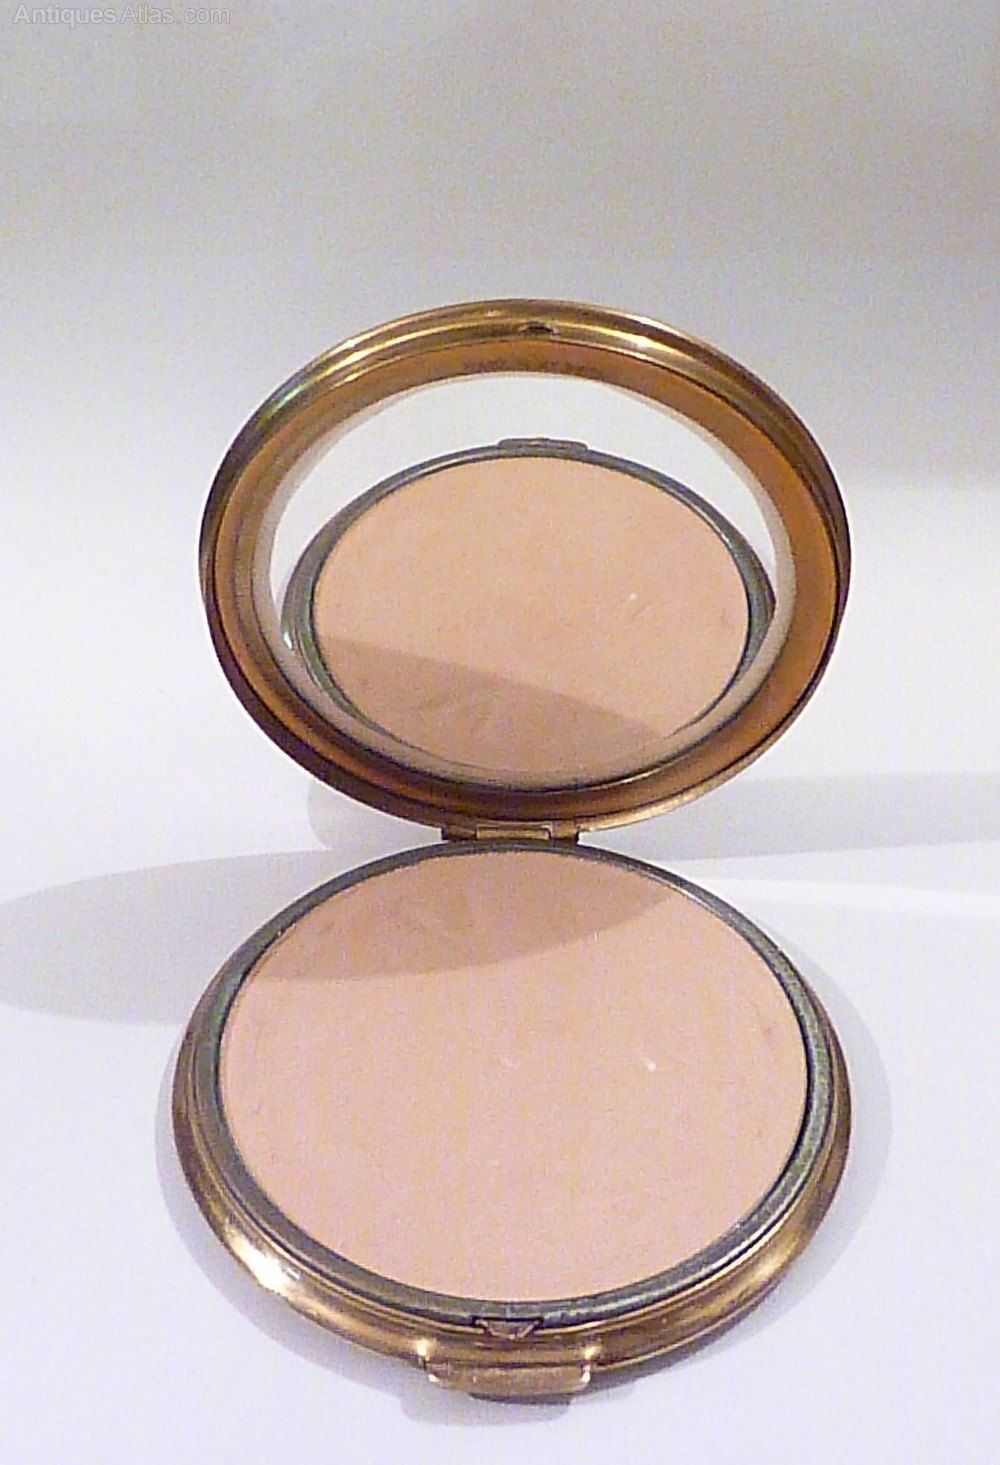 Sorry, Vintage compacts for mine